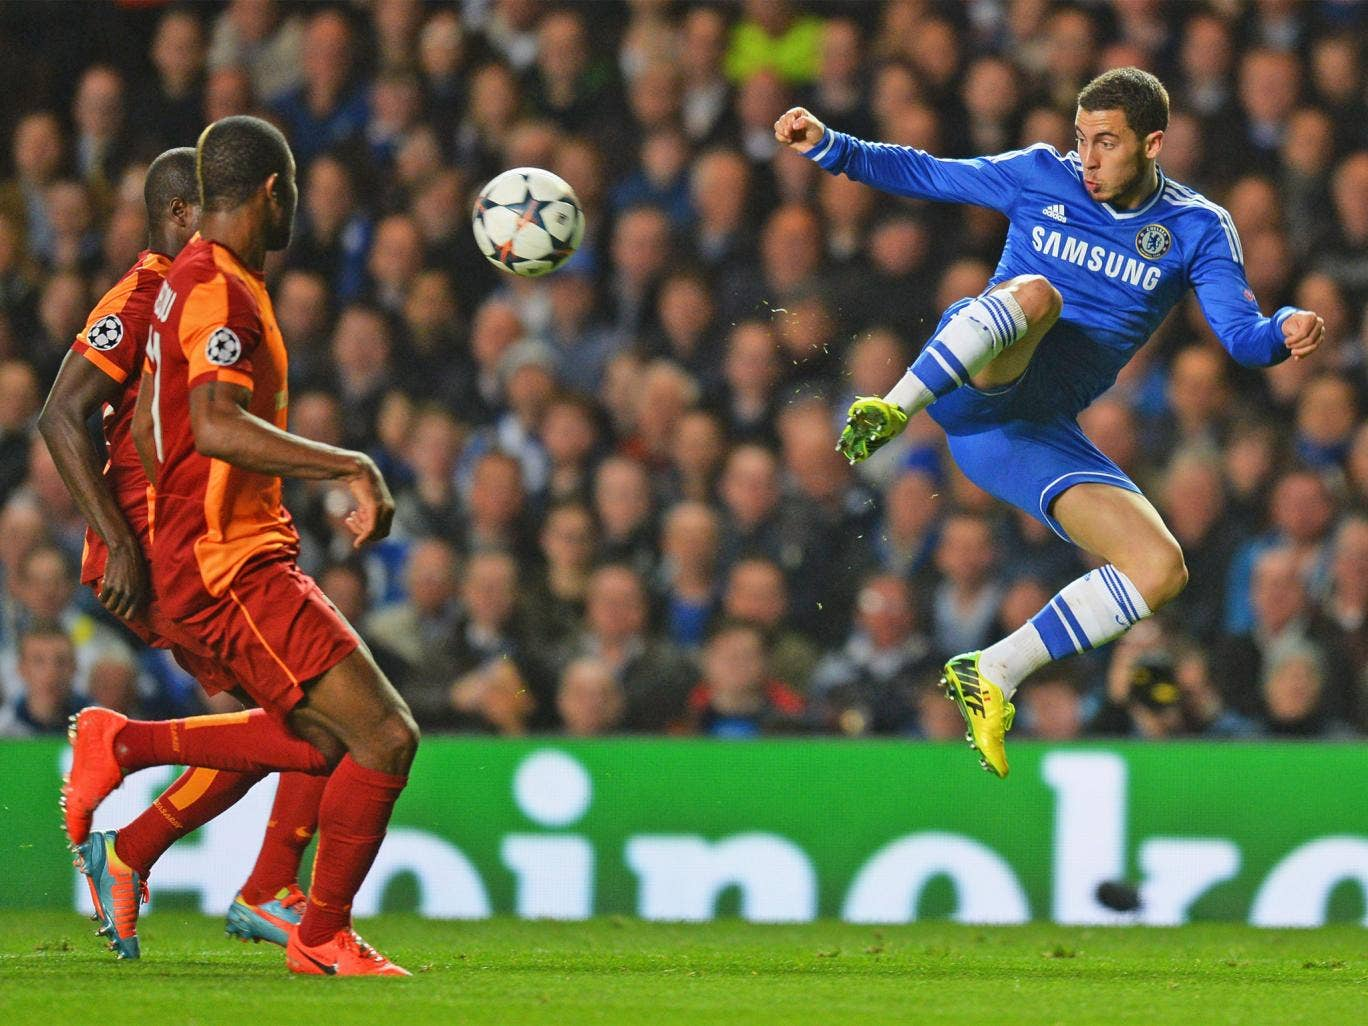 Eden Hazard was a standout player in Chelsea's 2-0 win over Galatasaray on Tuesday night